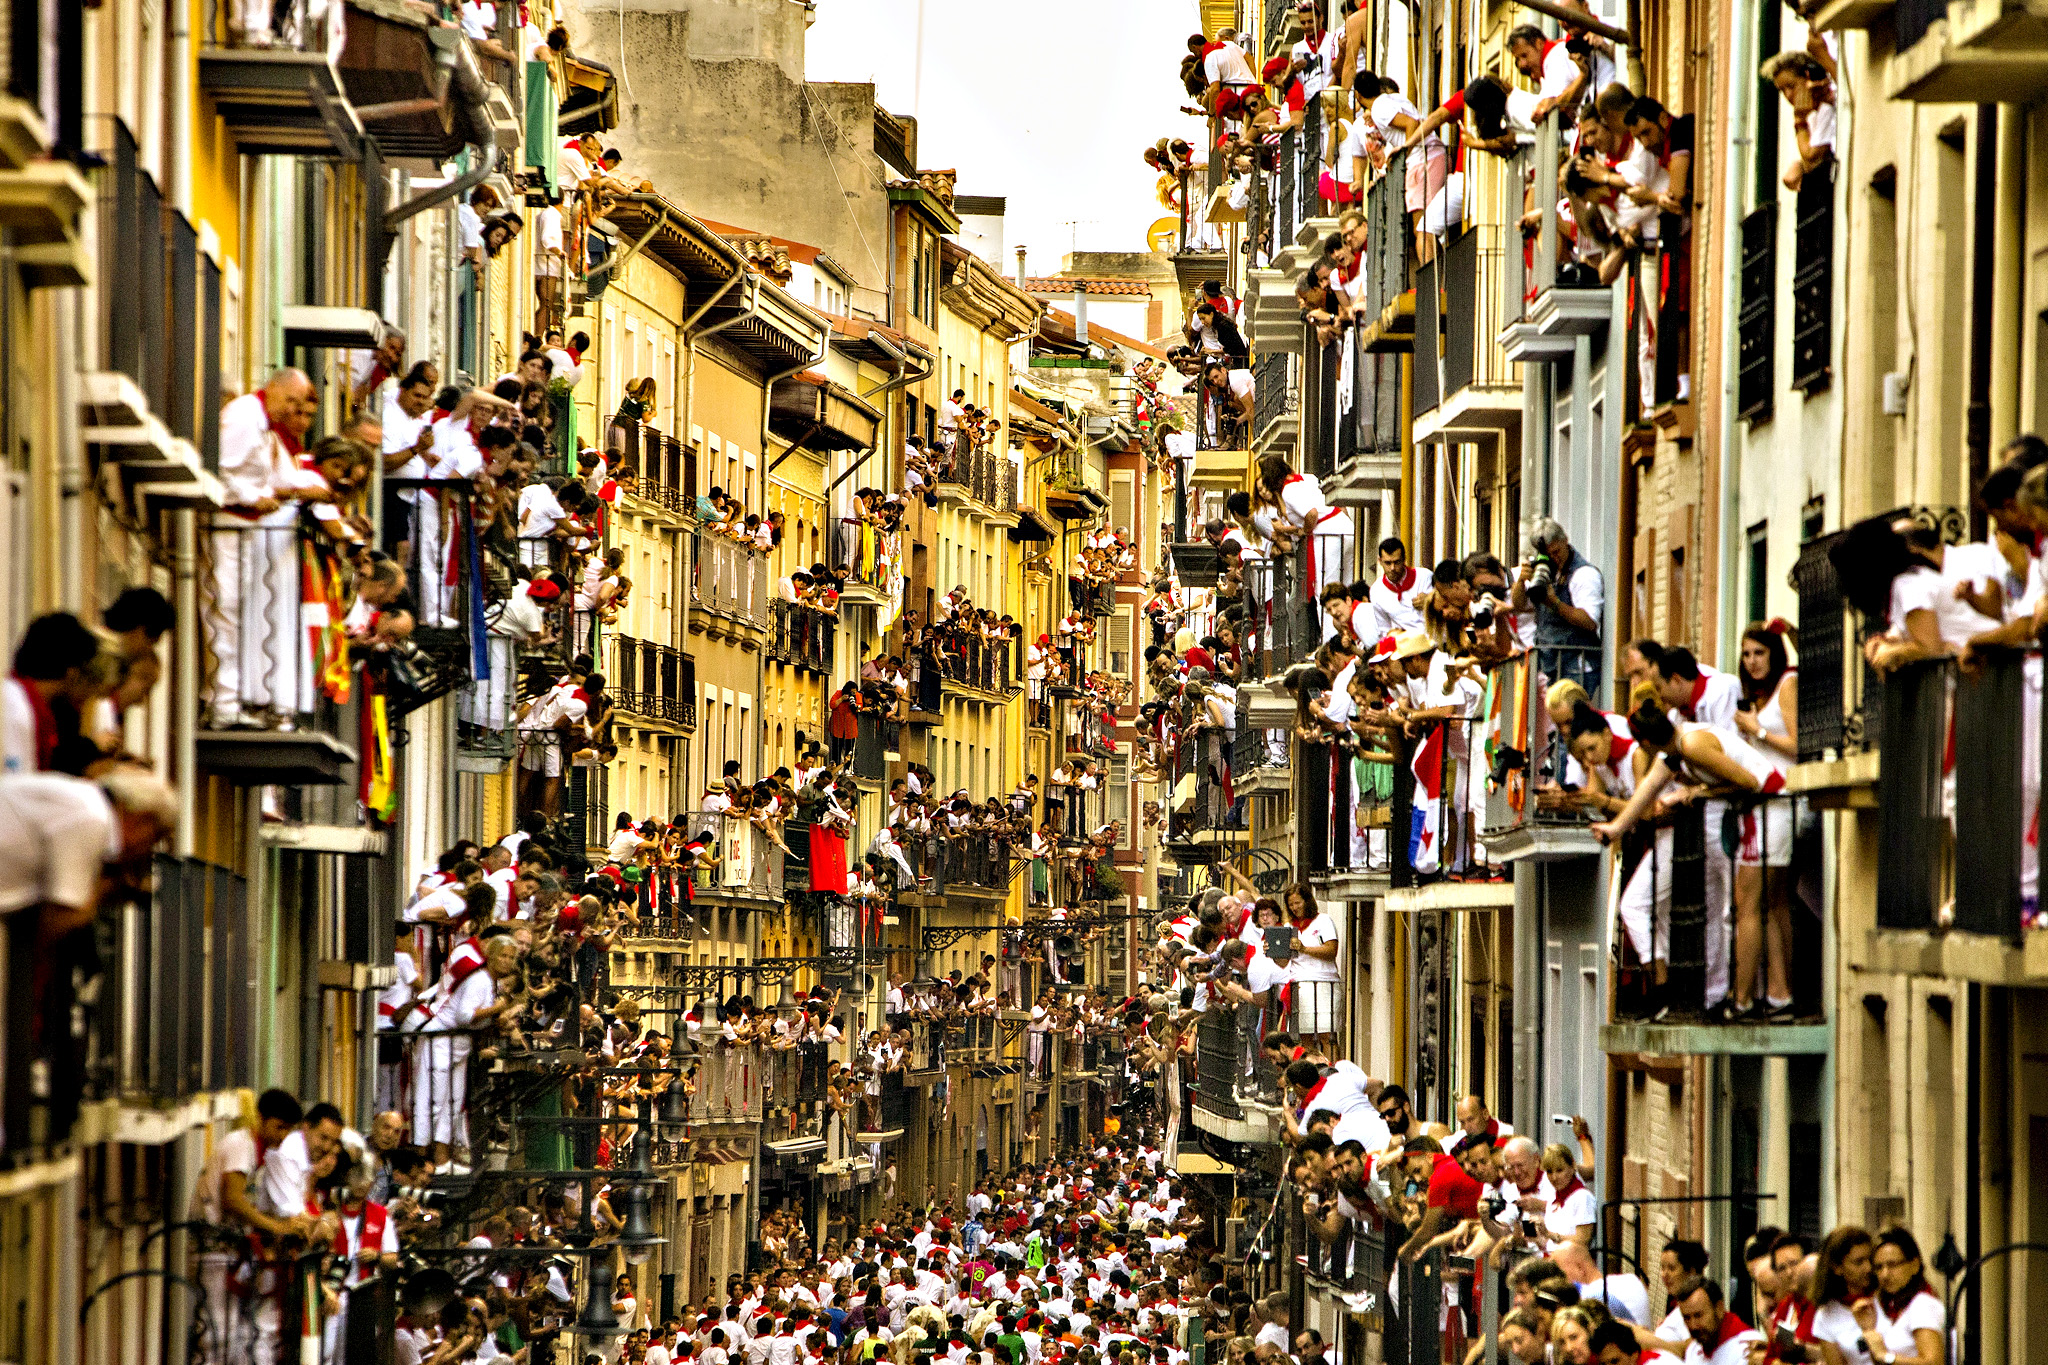 Pamplona Spain  City pictures : ... San Fermin festival, in Pamplona, Spain. 聖佛明節, 潘普洛納